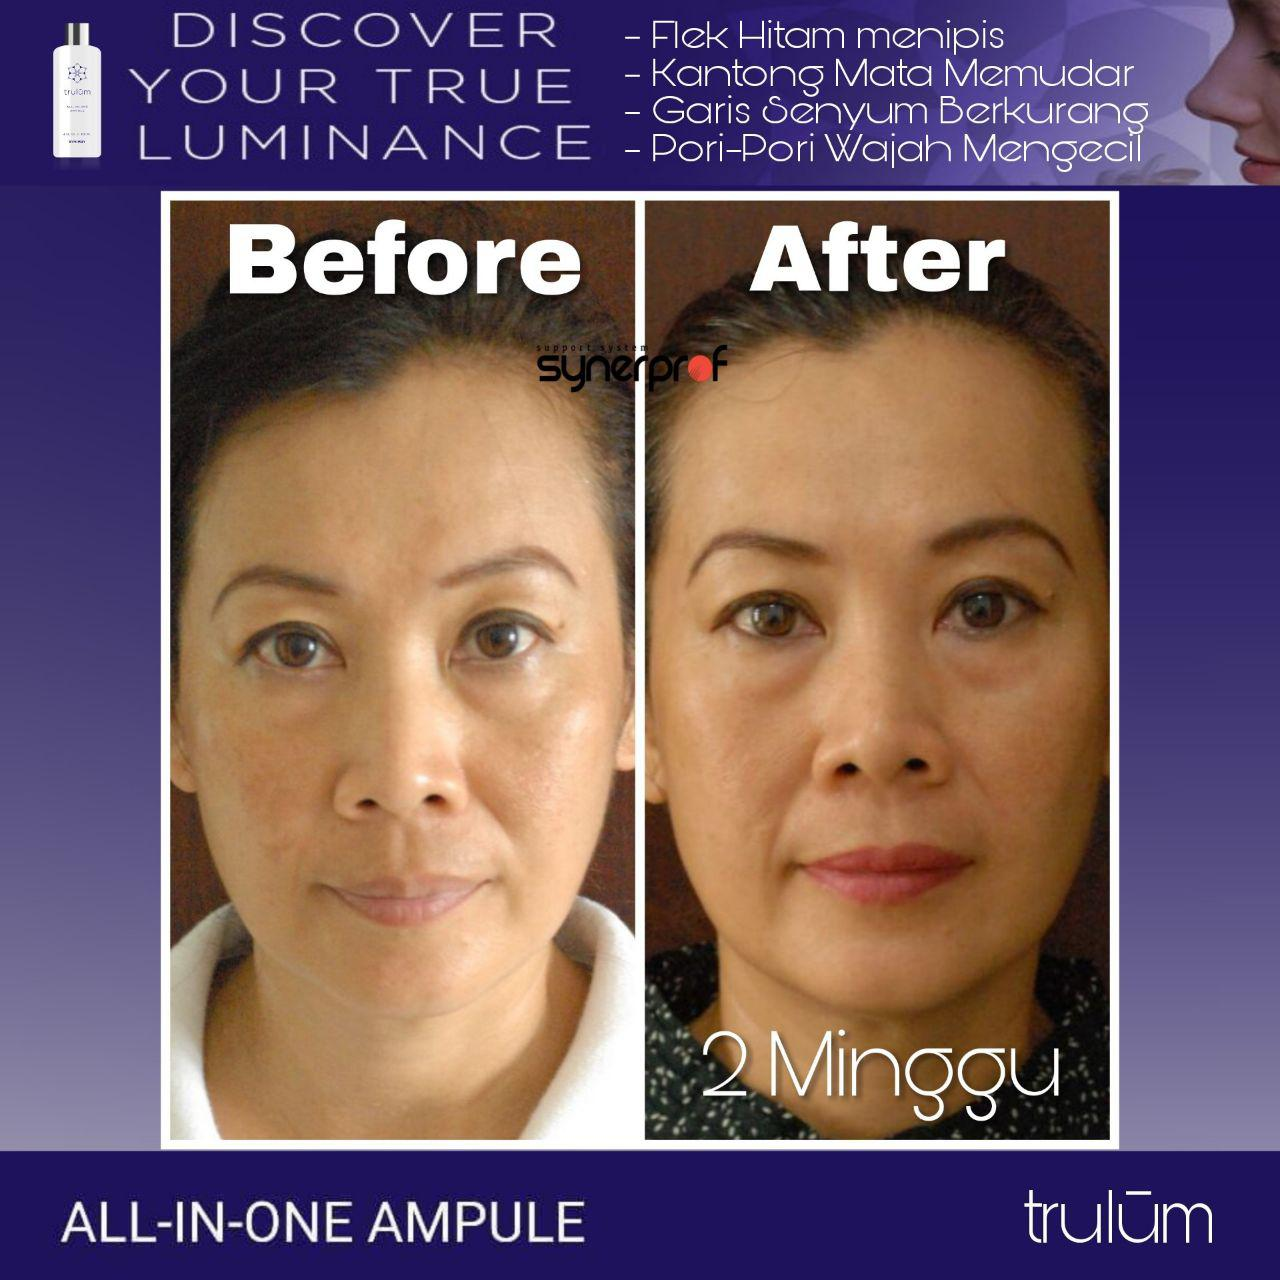 Jual Trulum All In One Ampoule Di Lamongan, Lamongan WA: 08112338376